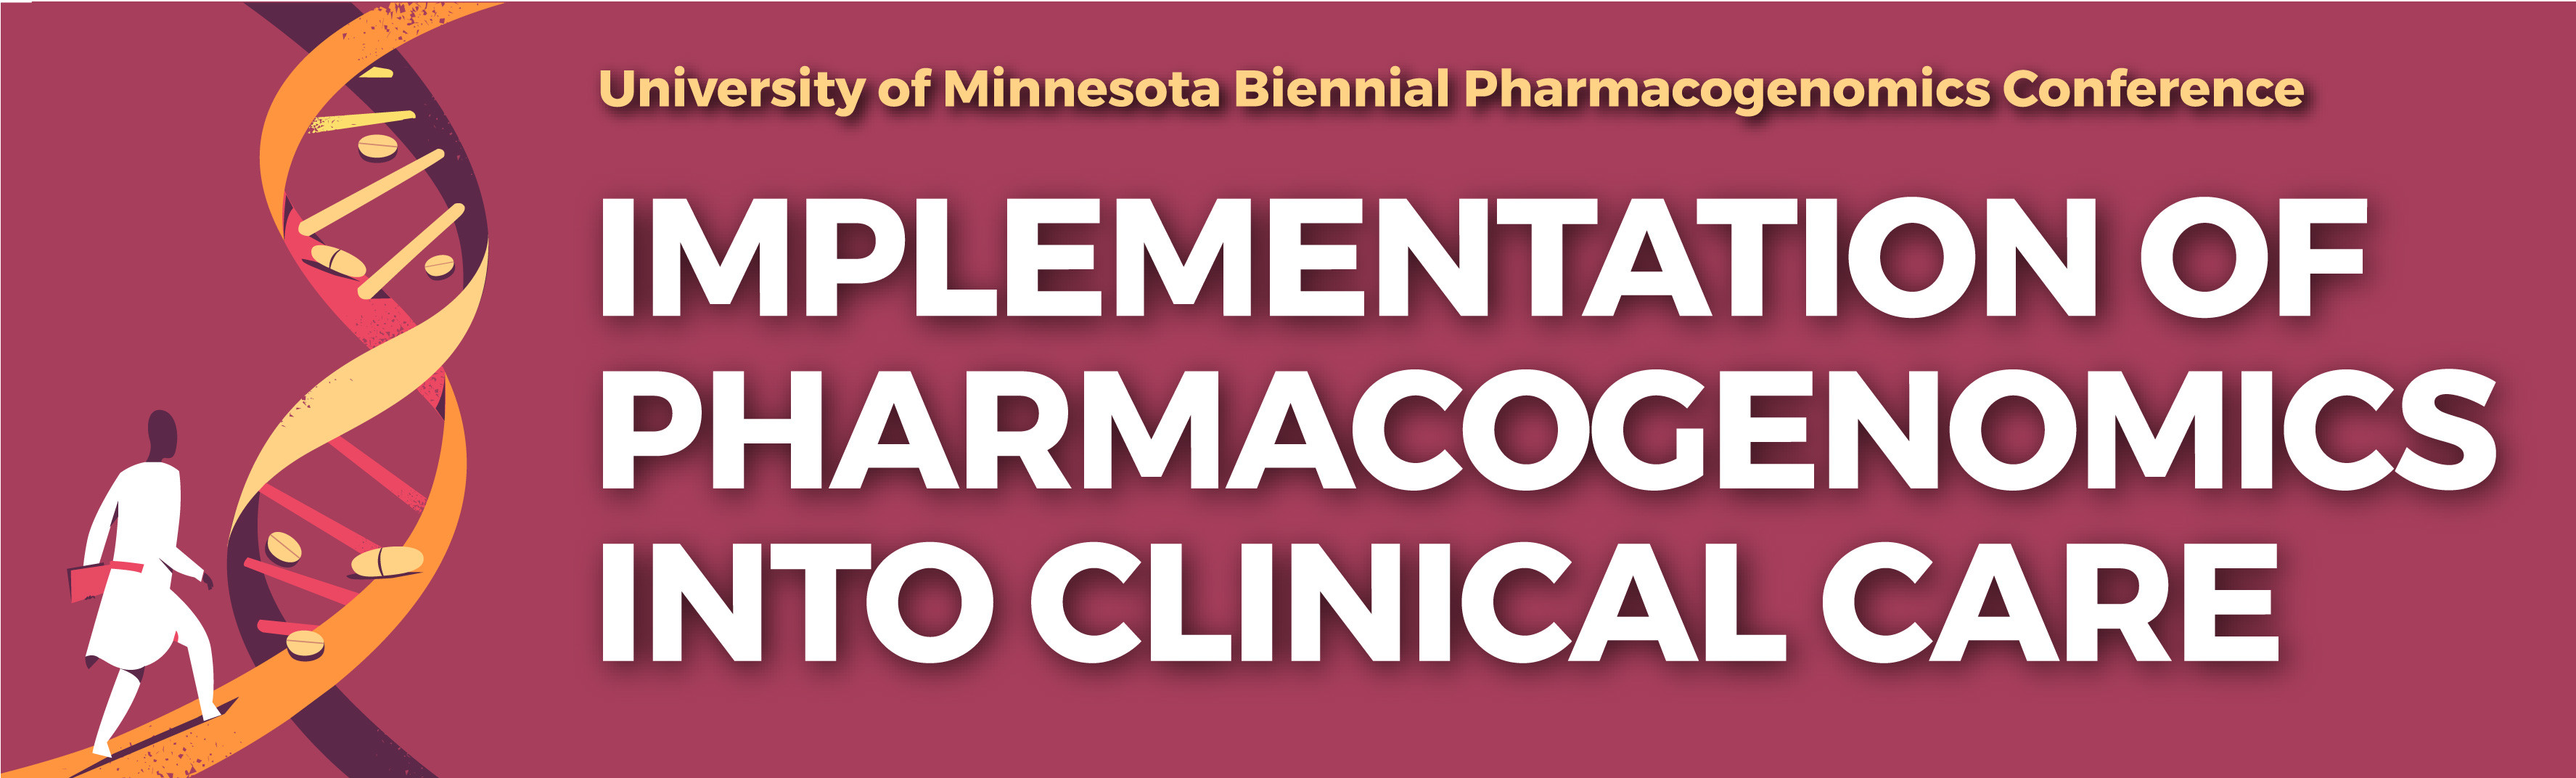 UMN Biennial PGx Conference: Implementation of Pharmacogenomics Into Clinical Care